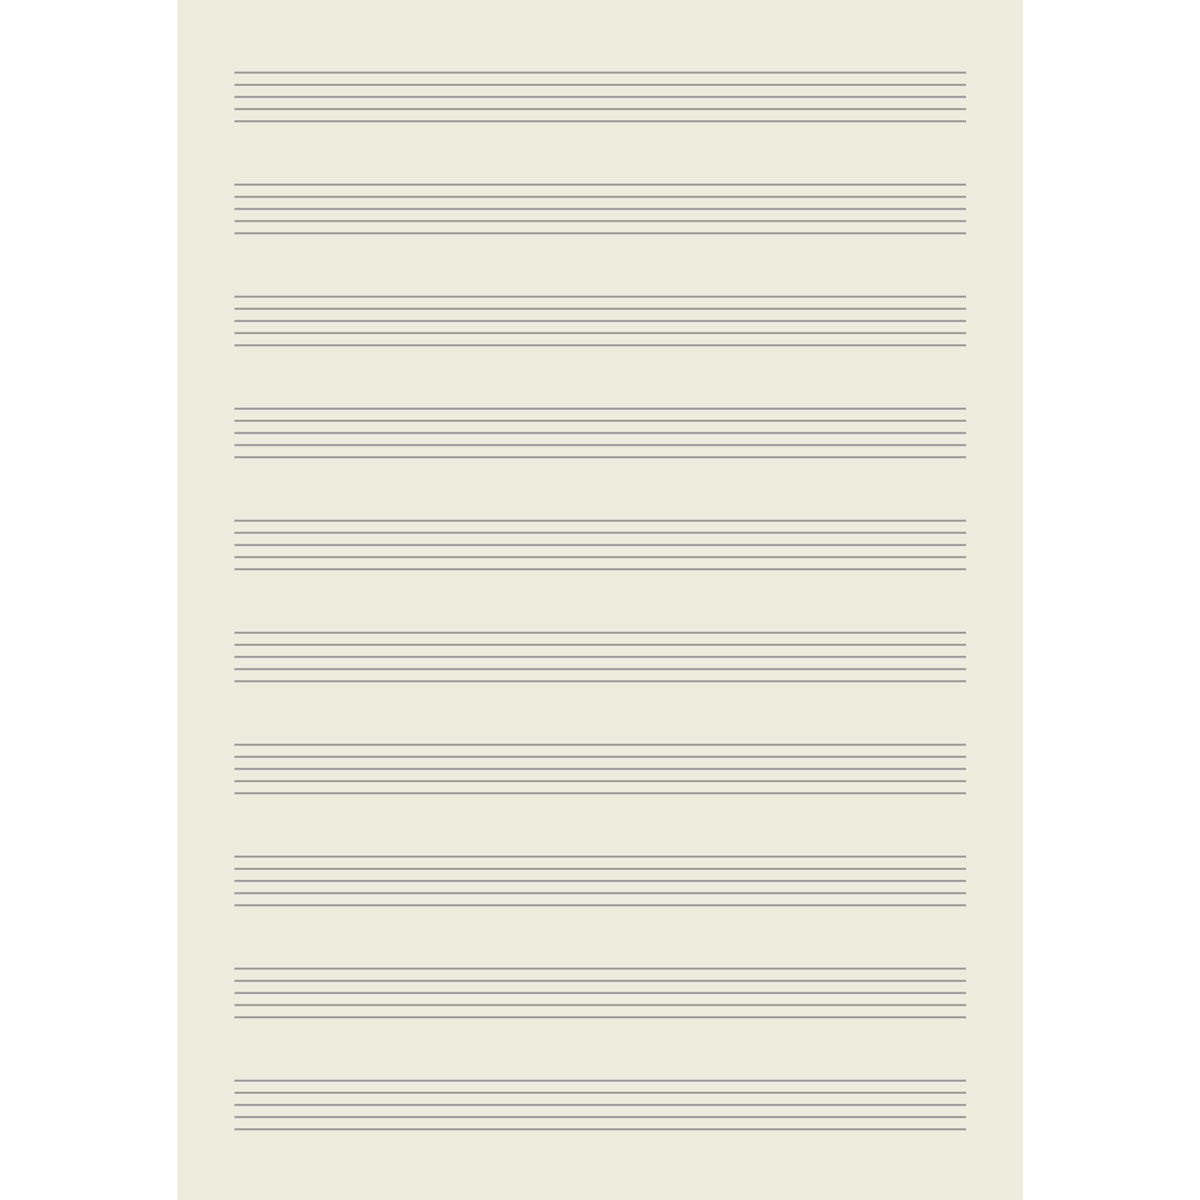 Page Layout of Leather Music Manuscript Notebook